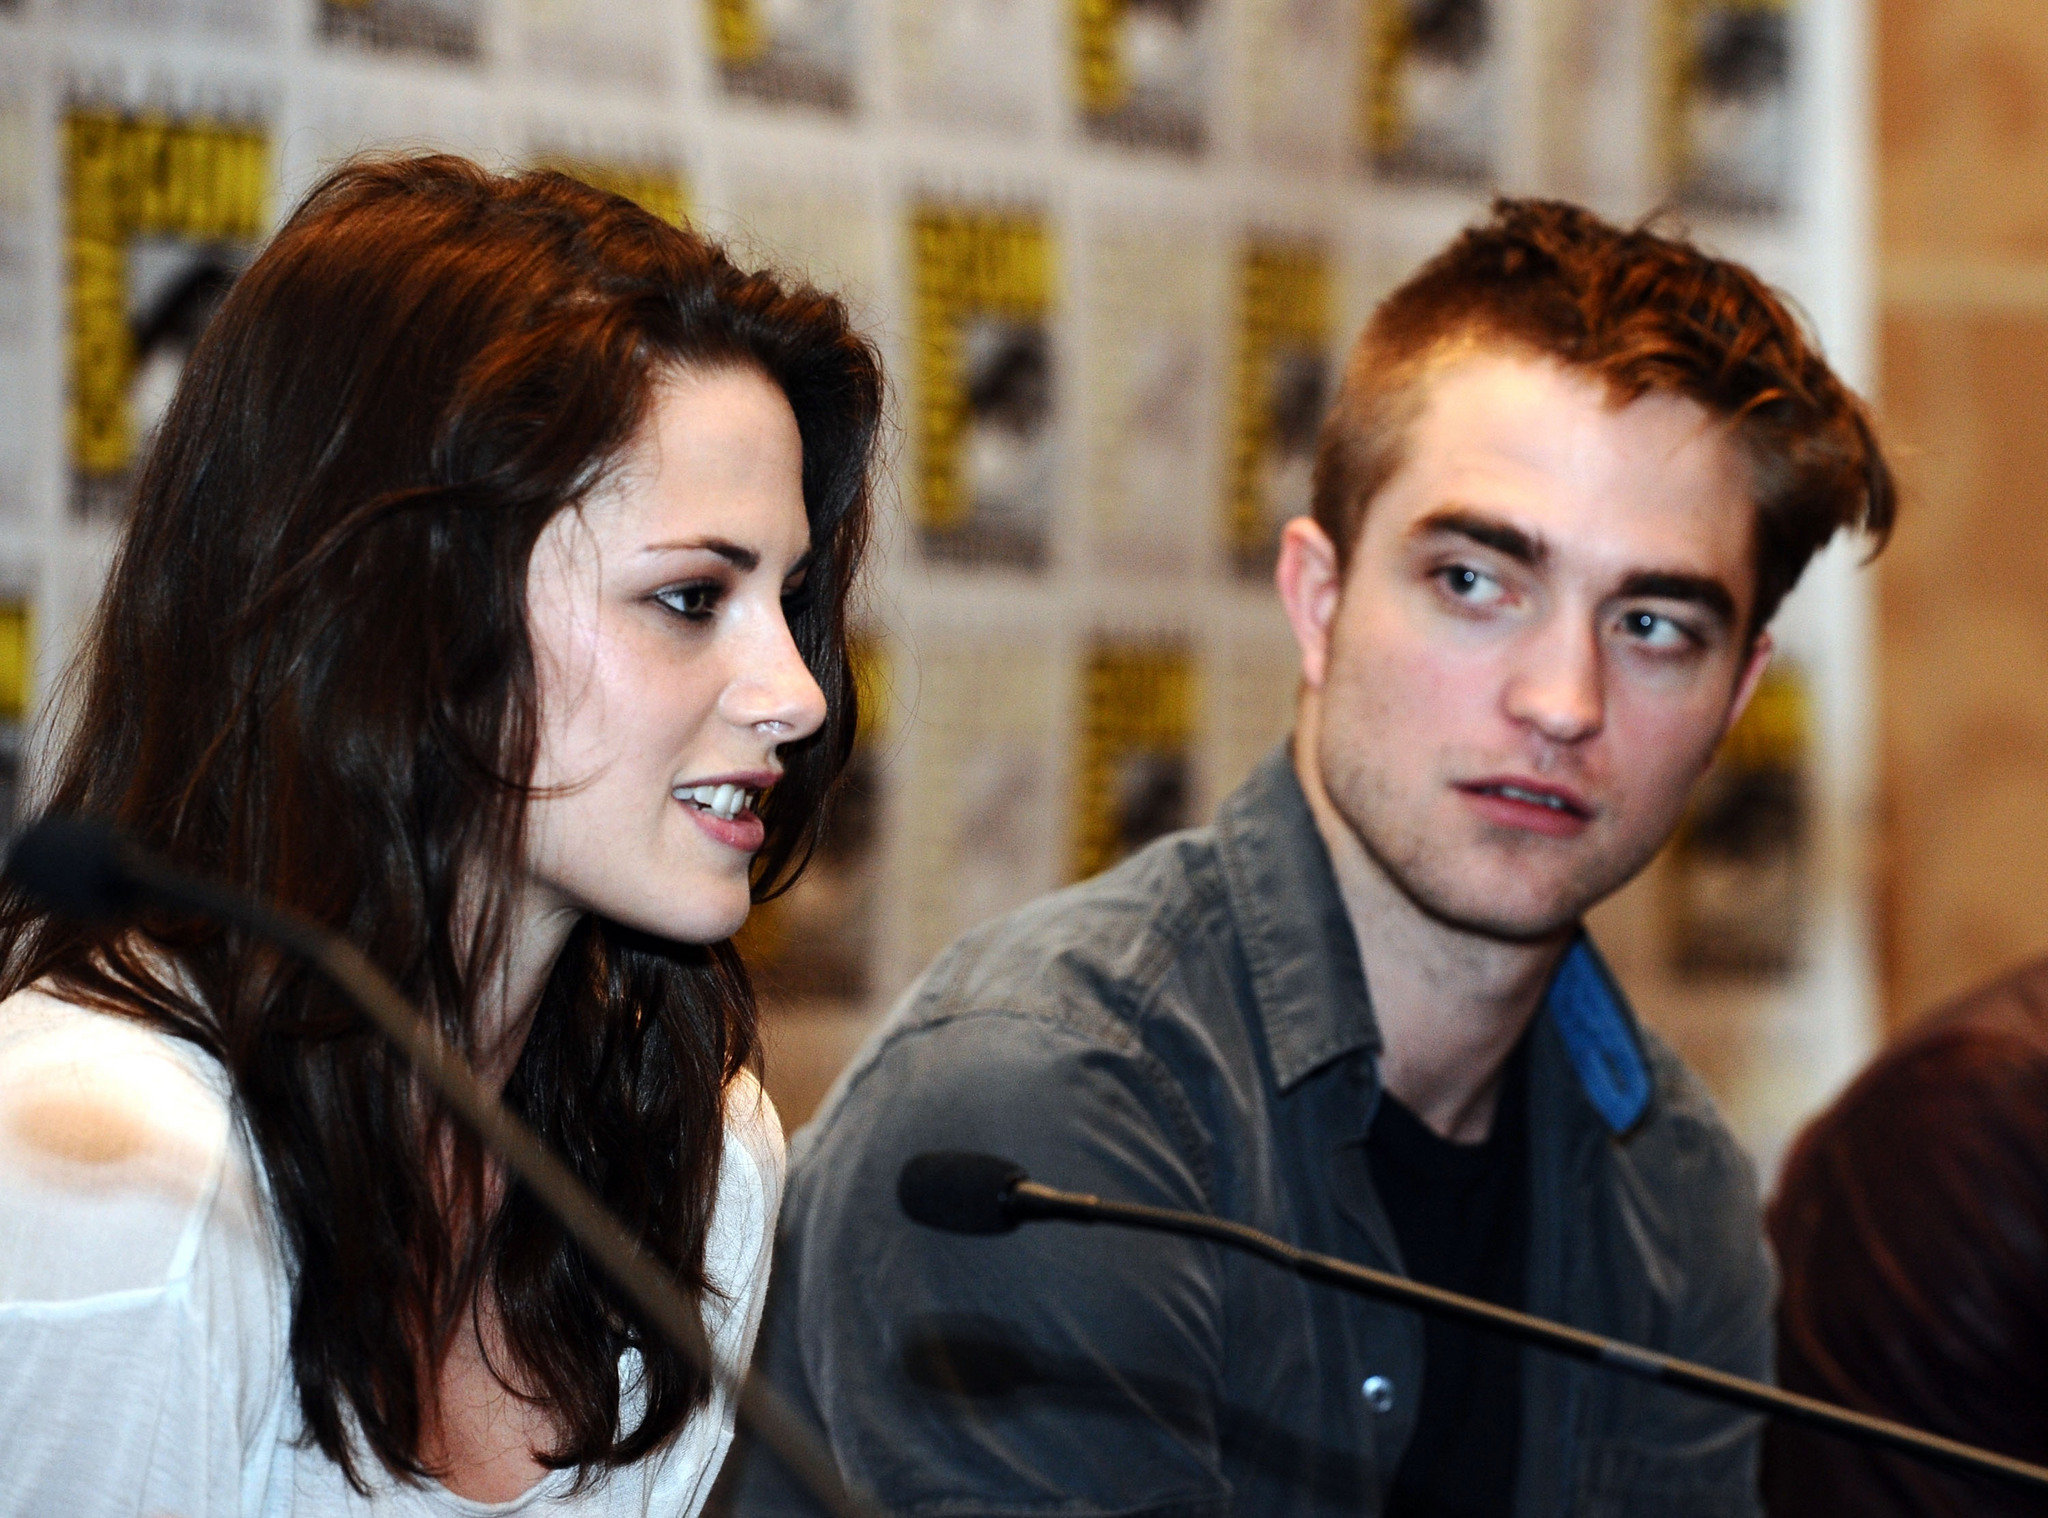 Robert Pattinson with ex Kristen Stewart